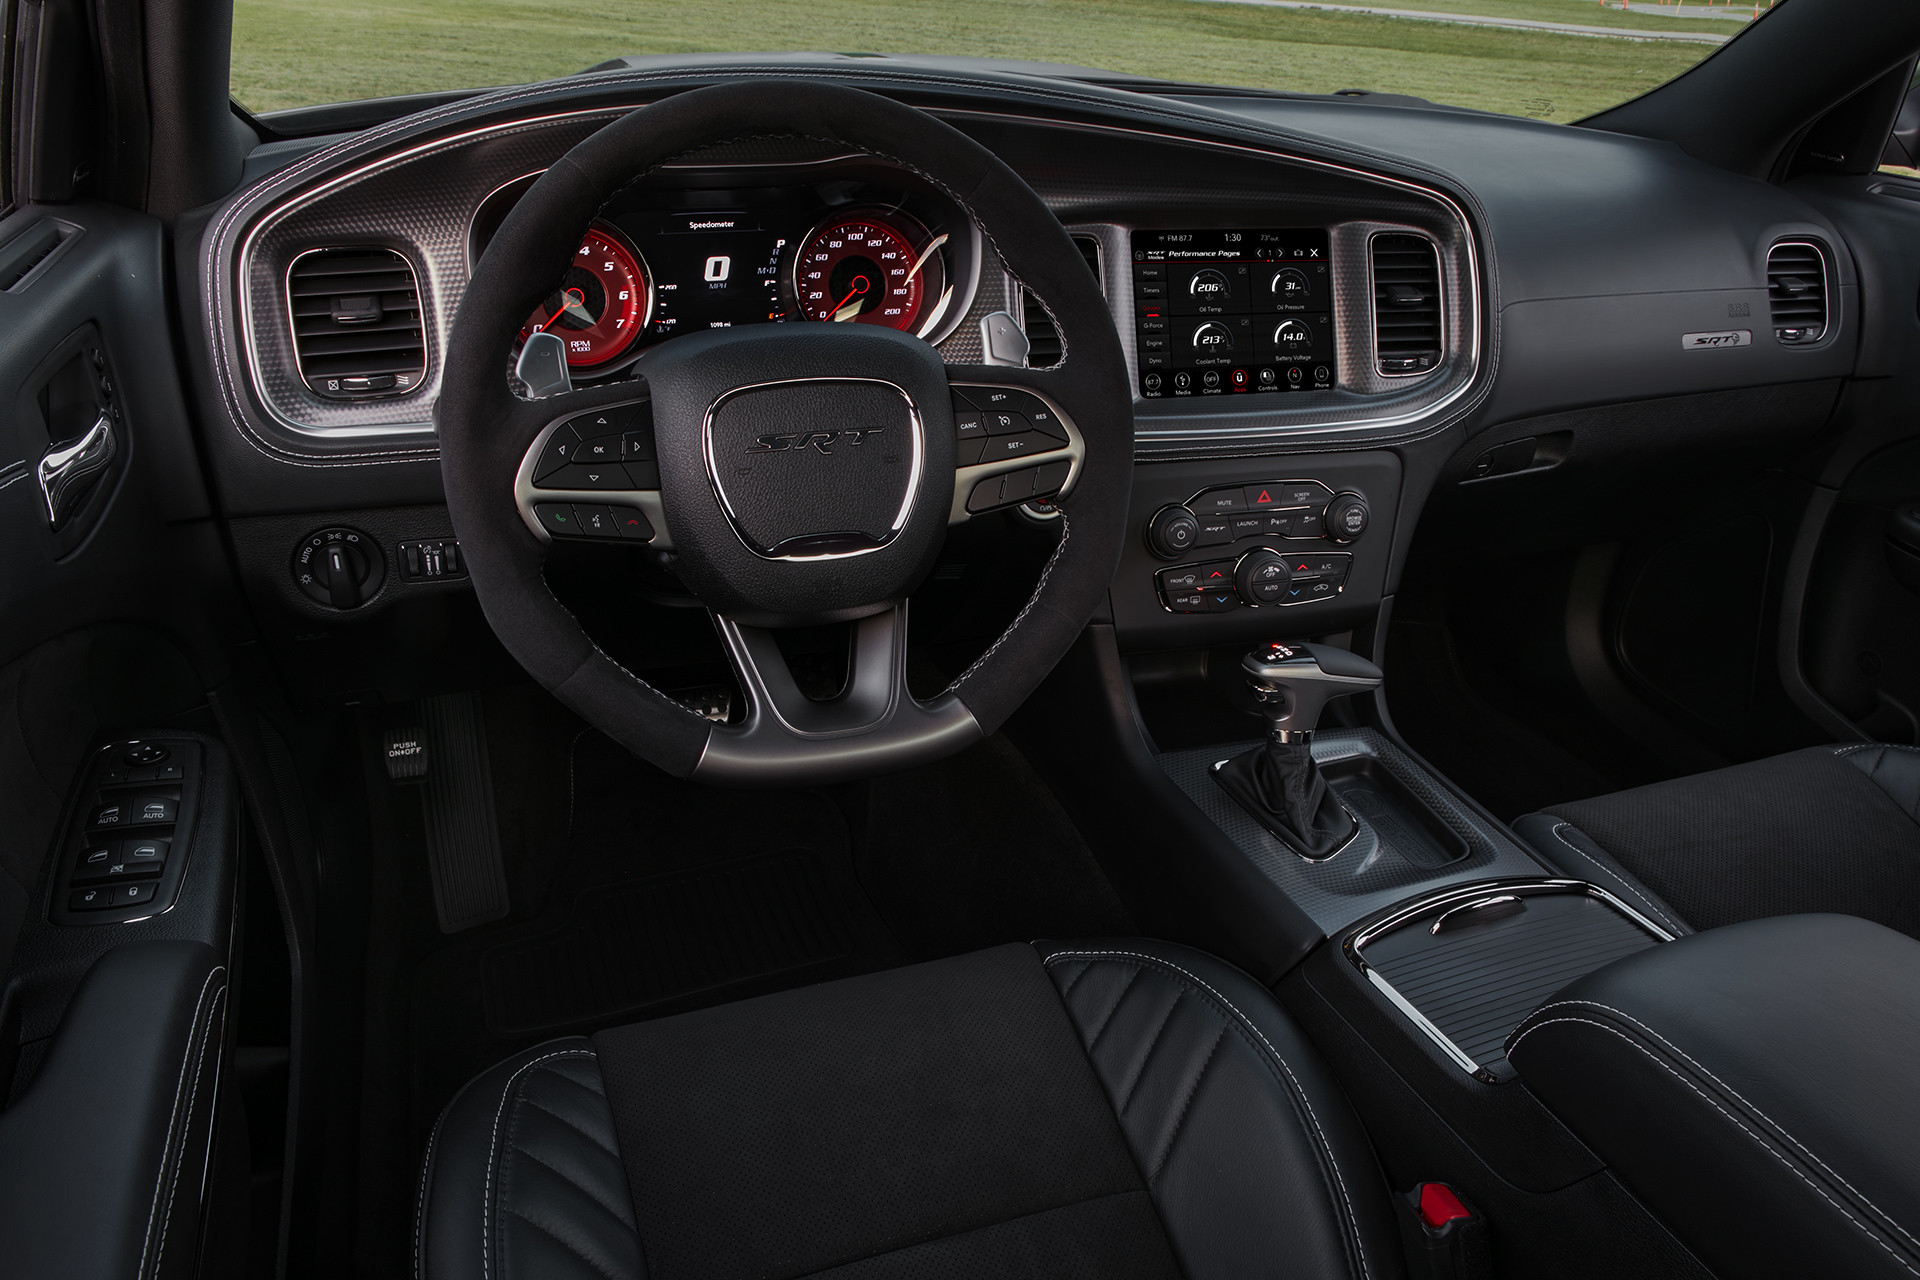 2019 Dodge Charger driver-focused cabin